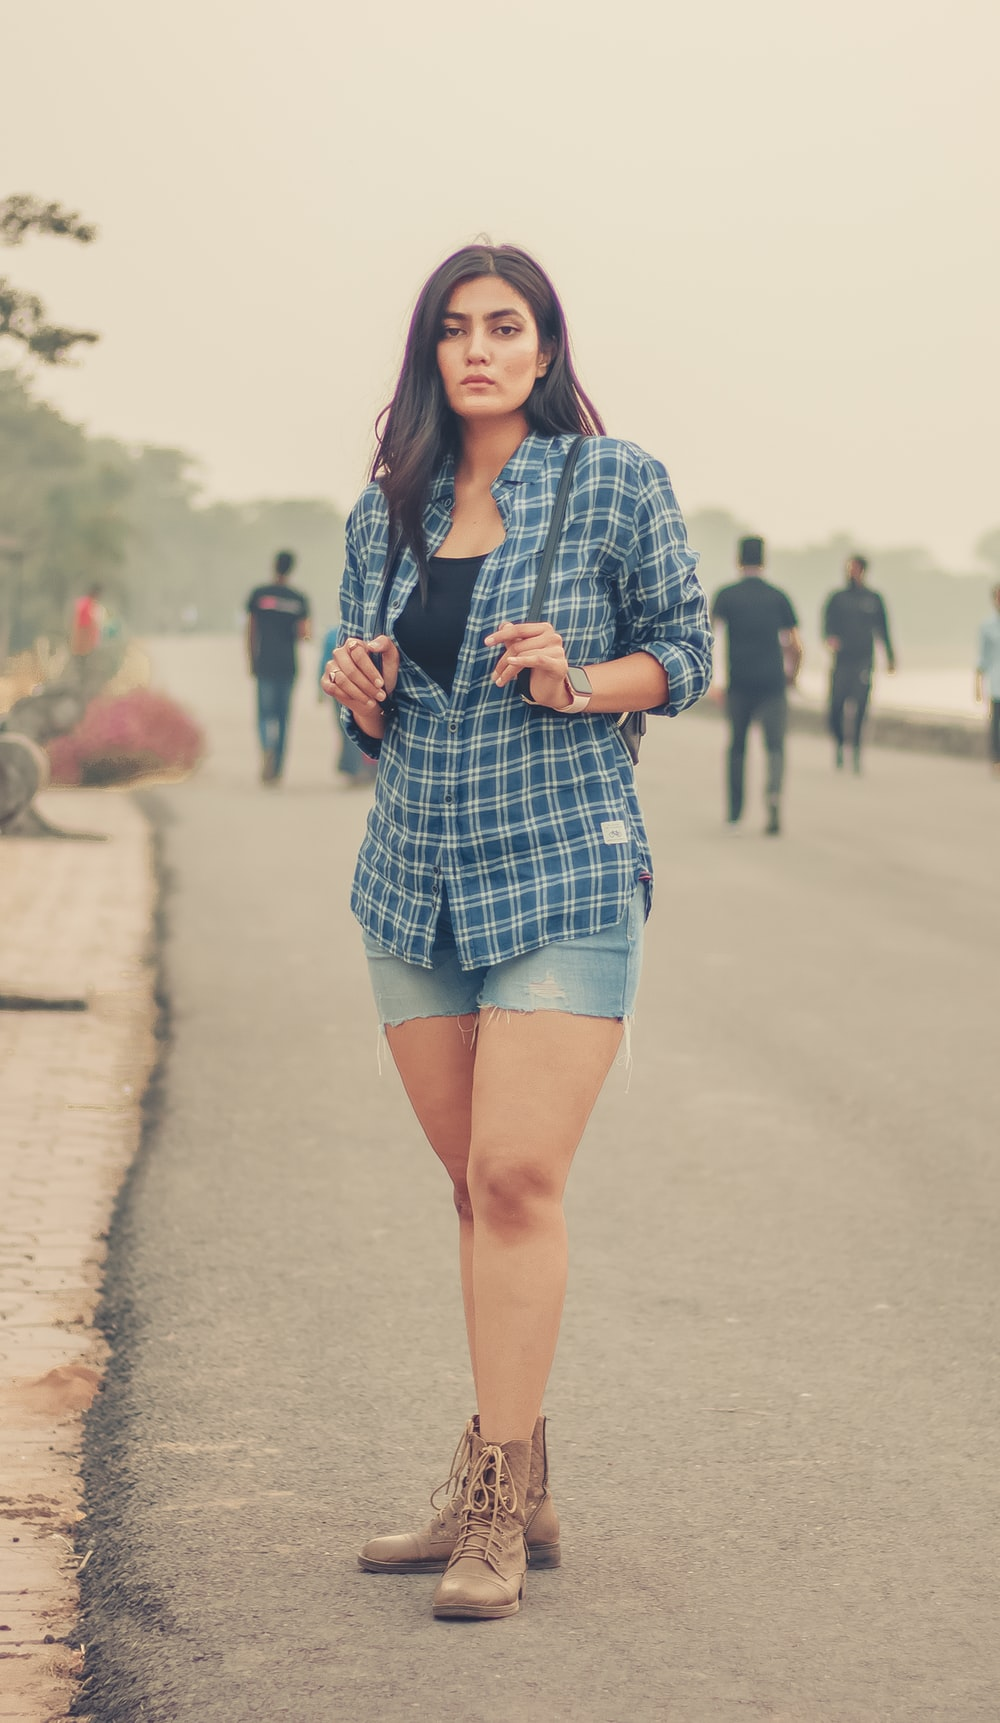 woman in blue and white plaid button up long sleeve shirt and blue denim shorts standing